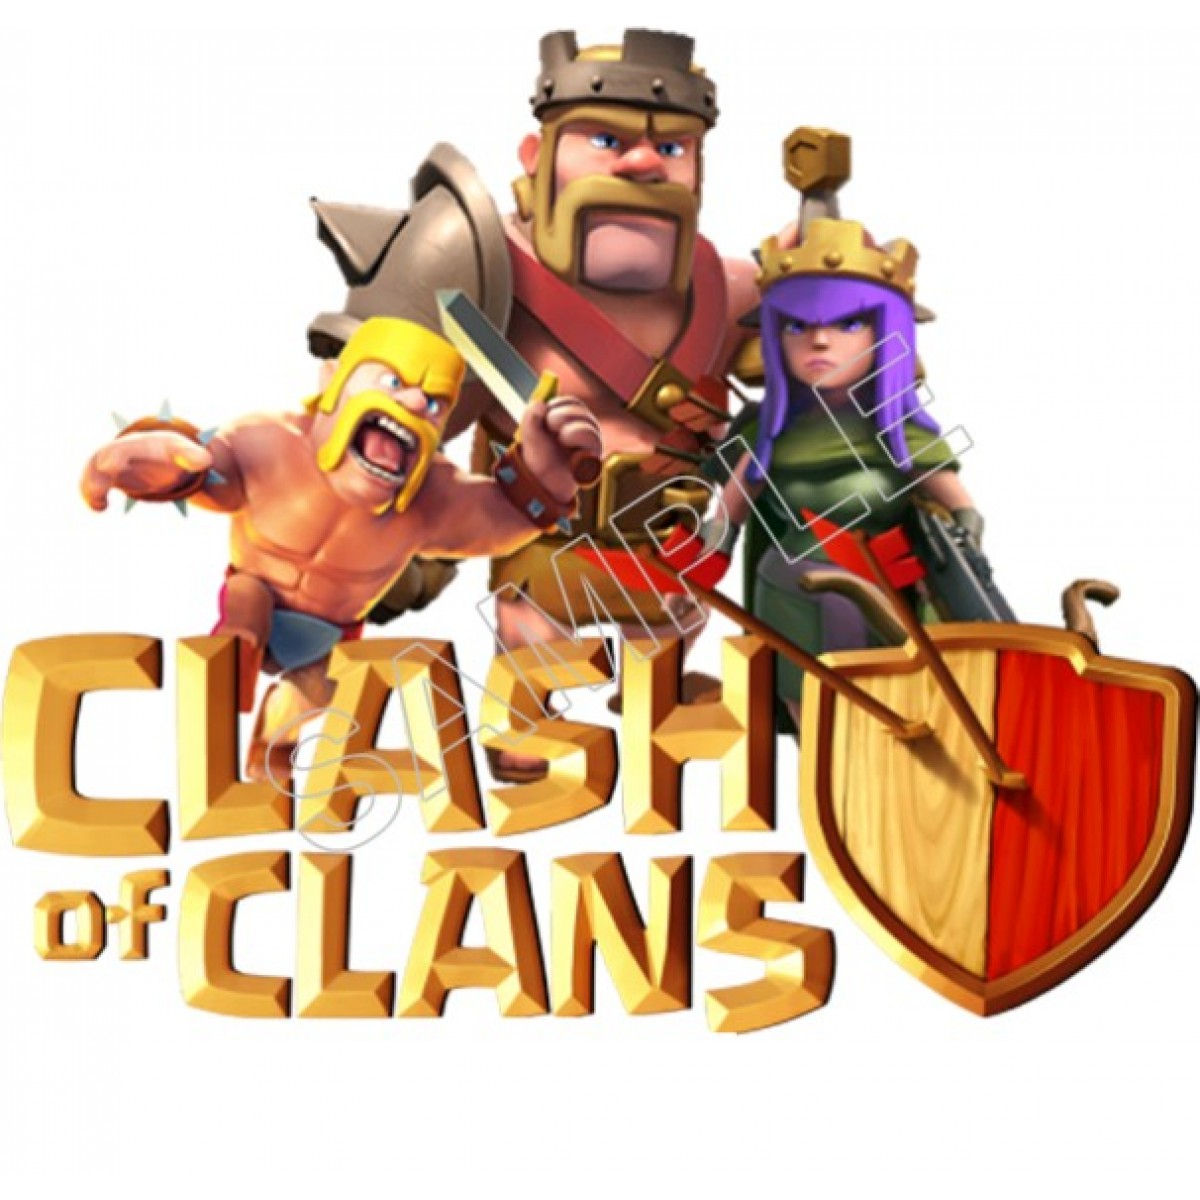 Wallpaper Android Clash Of Clans